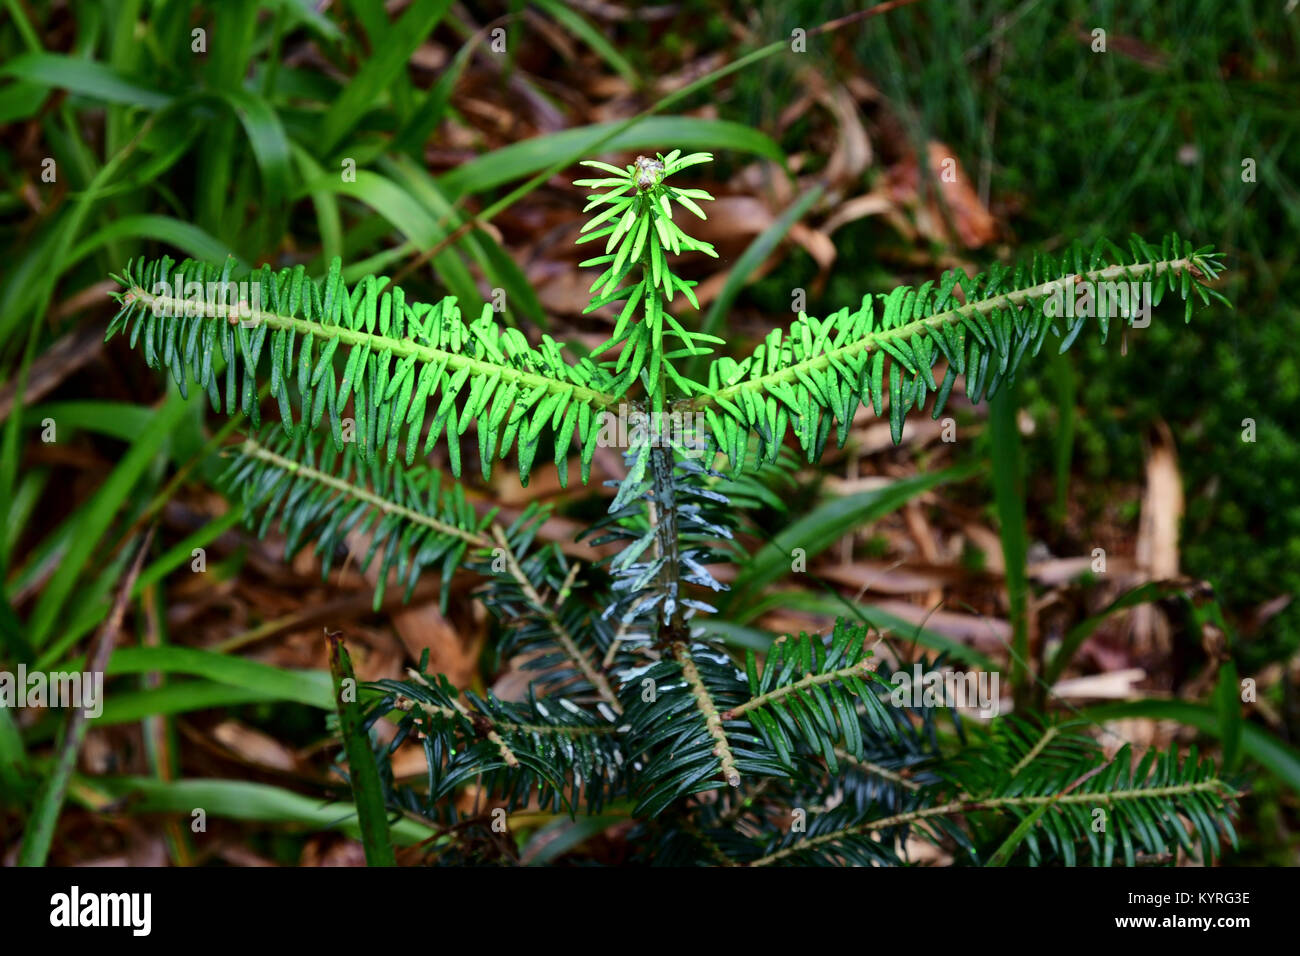 Colouring and treating with Chemicals  the buds  to defend the young trees, here Abies alba, from damage caused - Stock Image